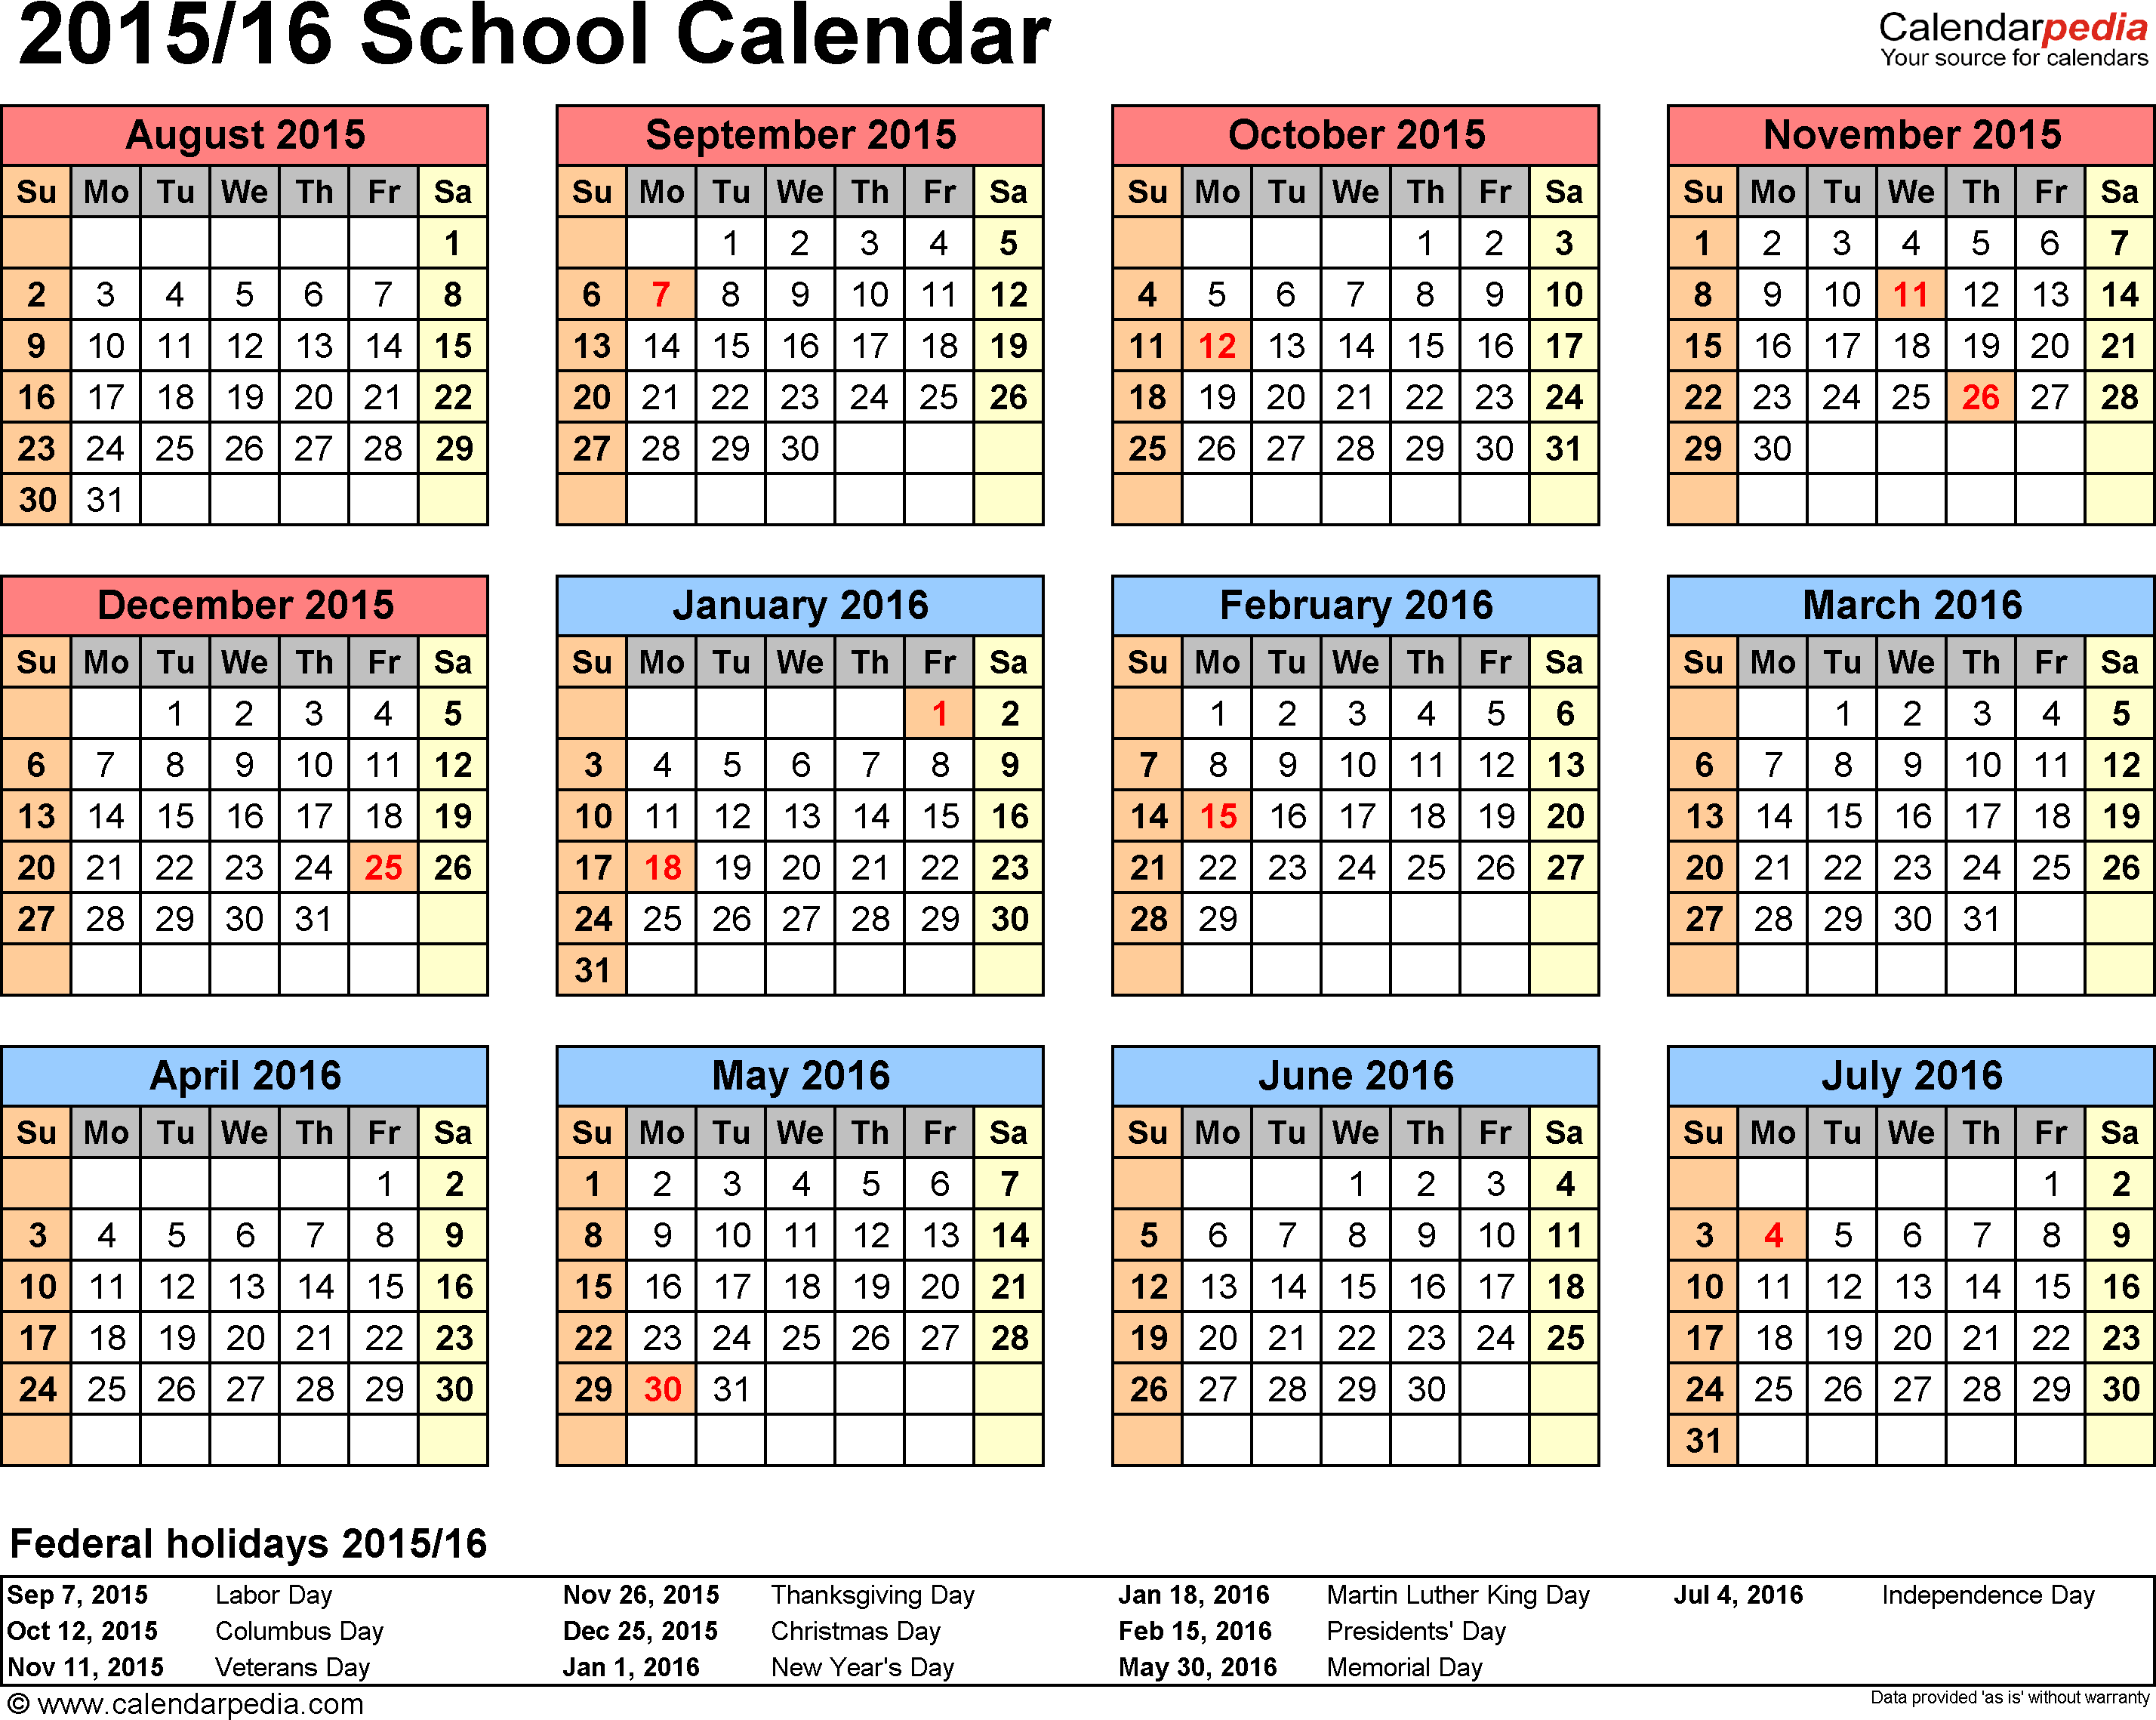 Download Template 4: School calendar 2015/16 in PDF format, landscape, 1 page, year at a glance